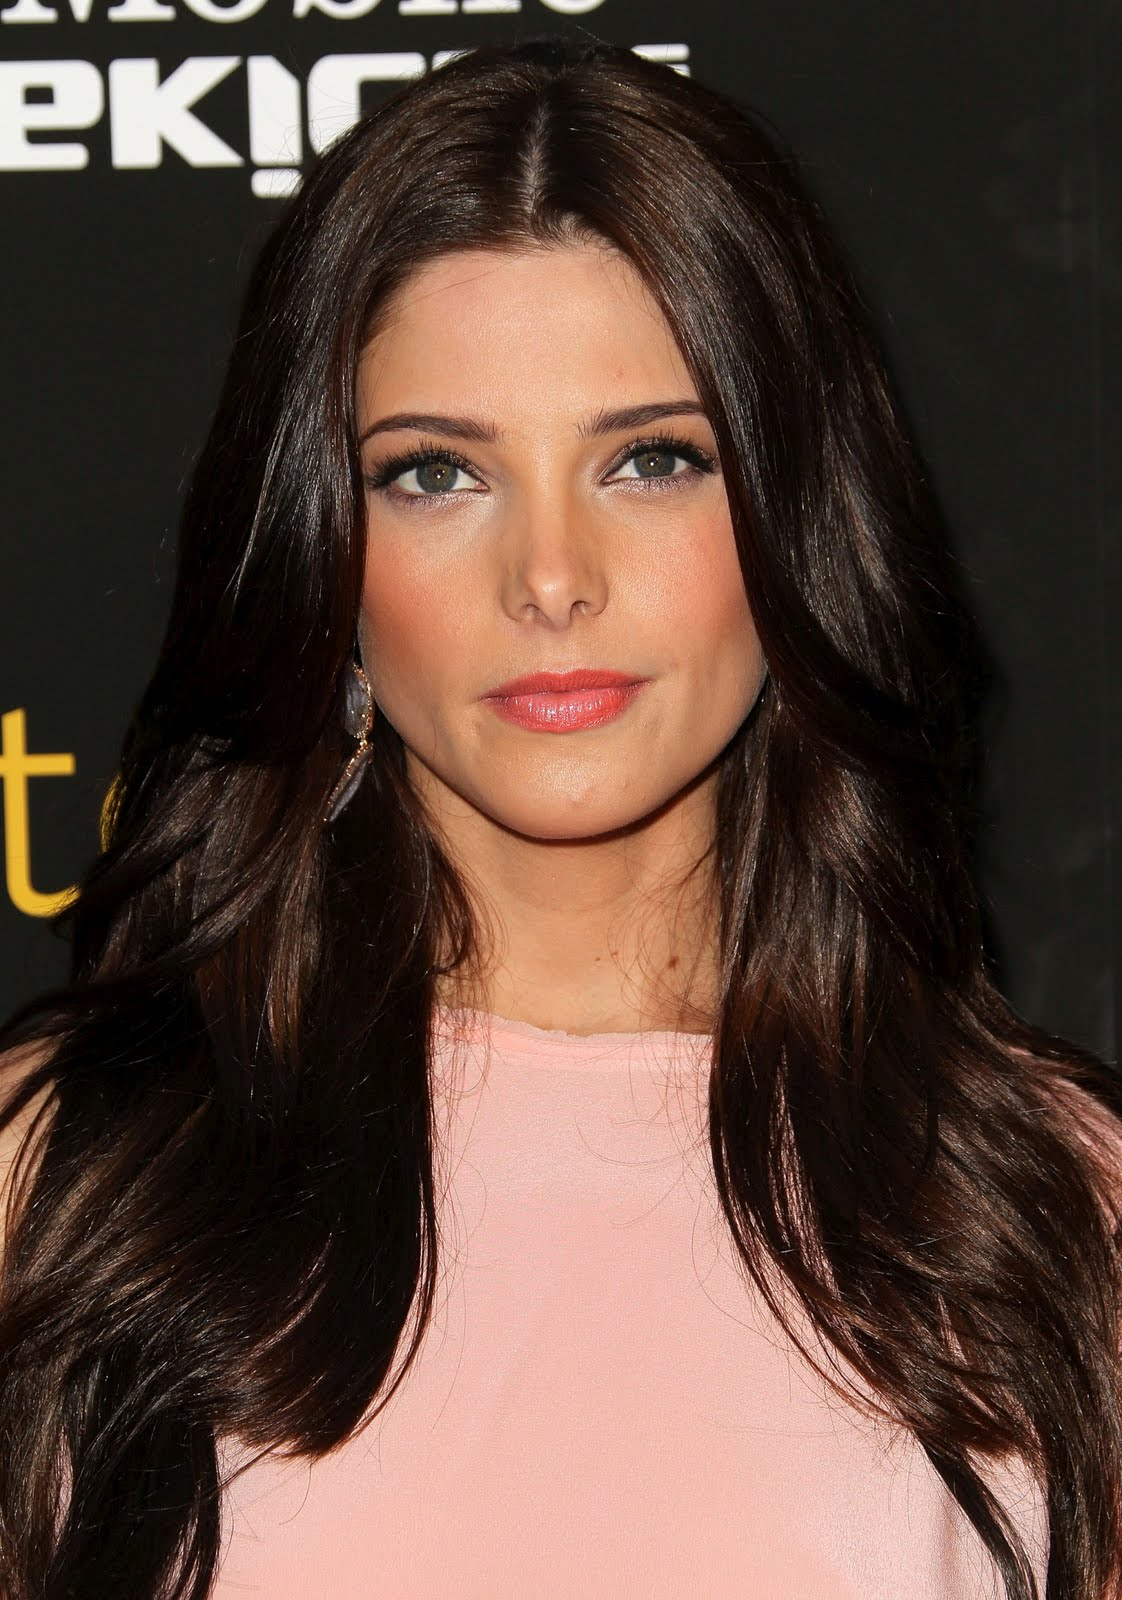 http://2.bp.blogspot.com/-EPCY6ppz-OM/Tc3vFSlyARI/AAAAAAAADRY/8cLlA0Okp60/s1600/Ashley-Greene-at-Skateland-Premiere-in-Los-Angeles-0dbtg02.jpg